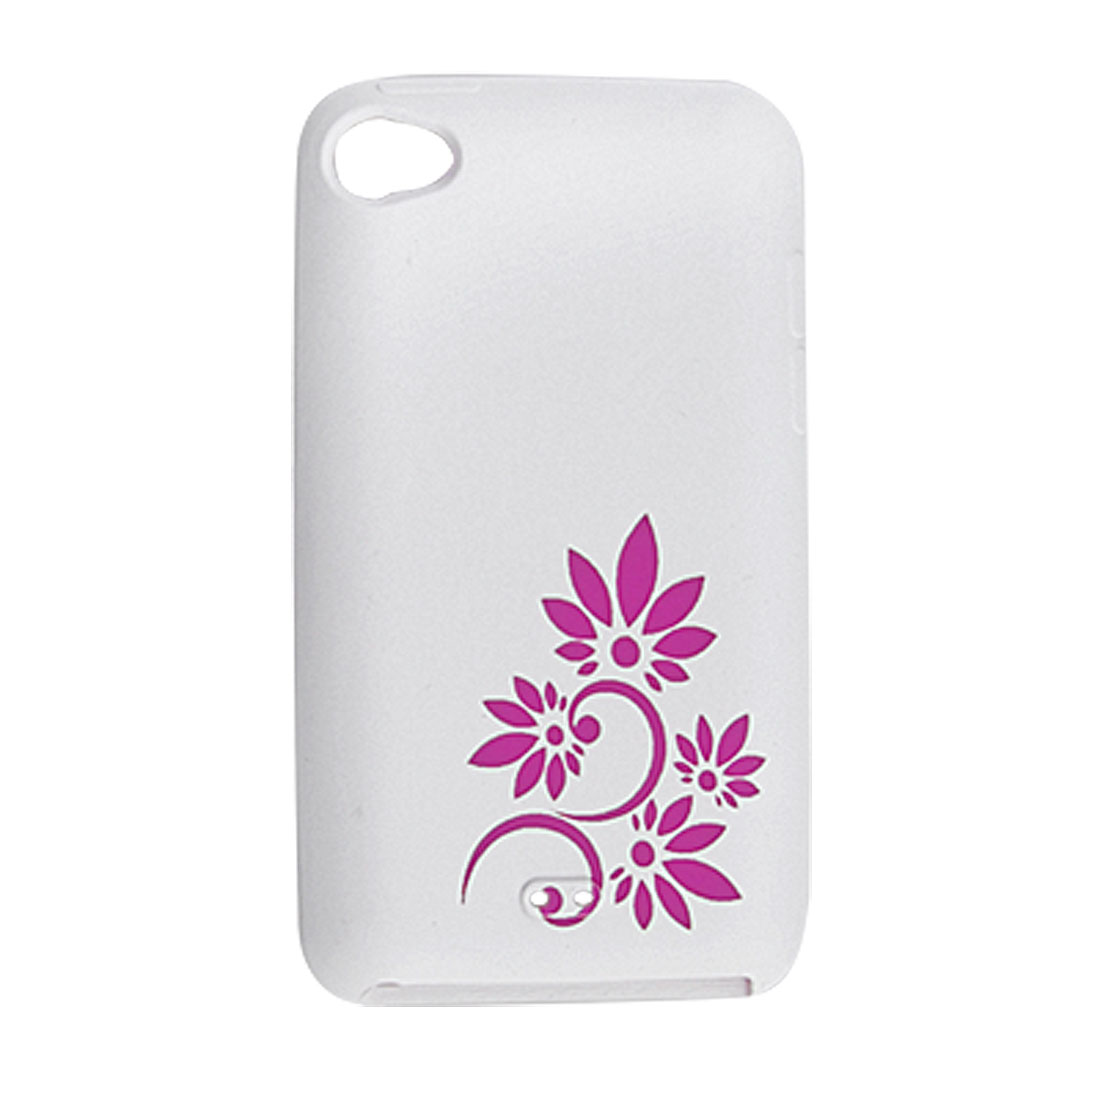 Fuchsia Flower Silicone Skin Case White for iPod Touch 4G